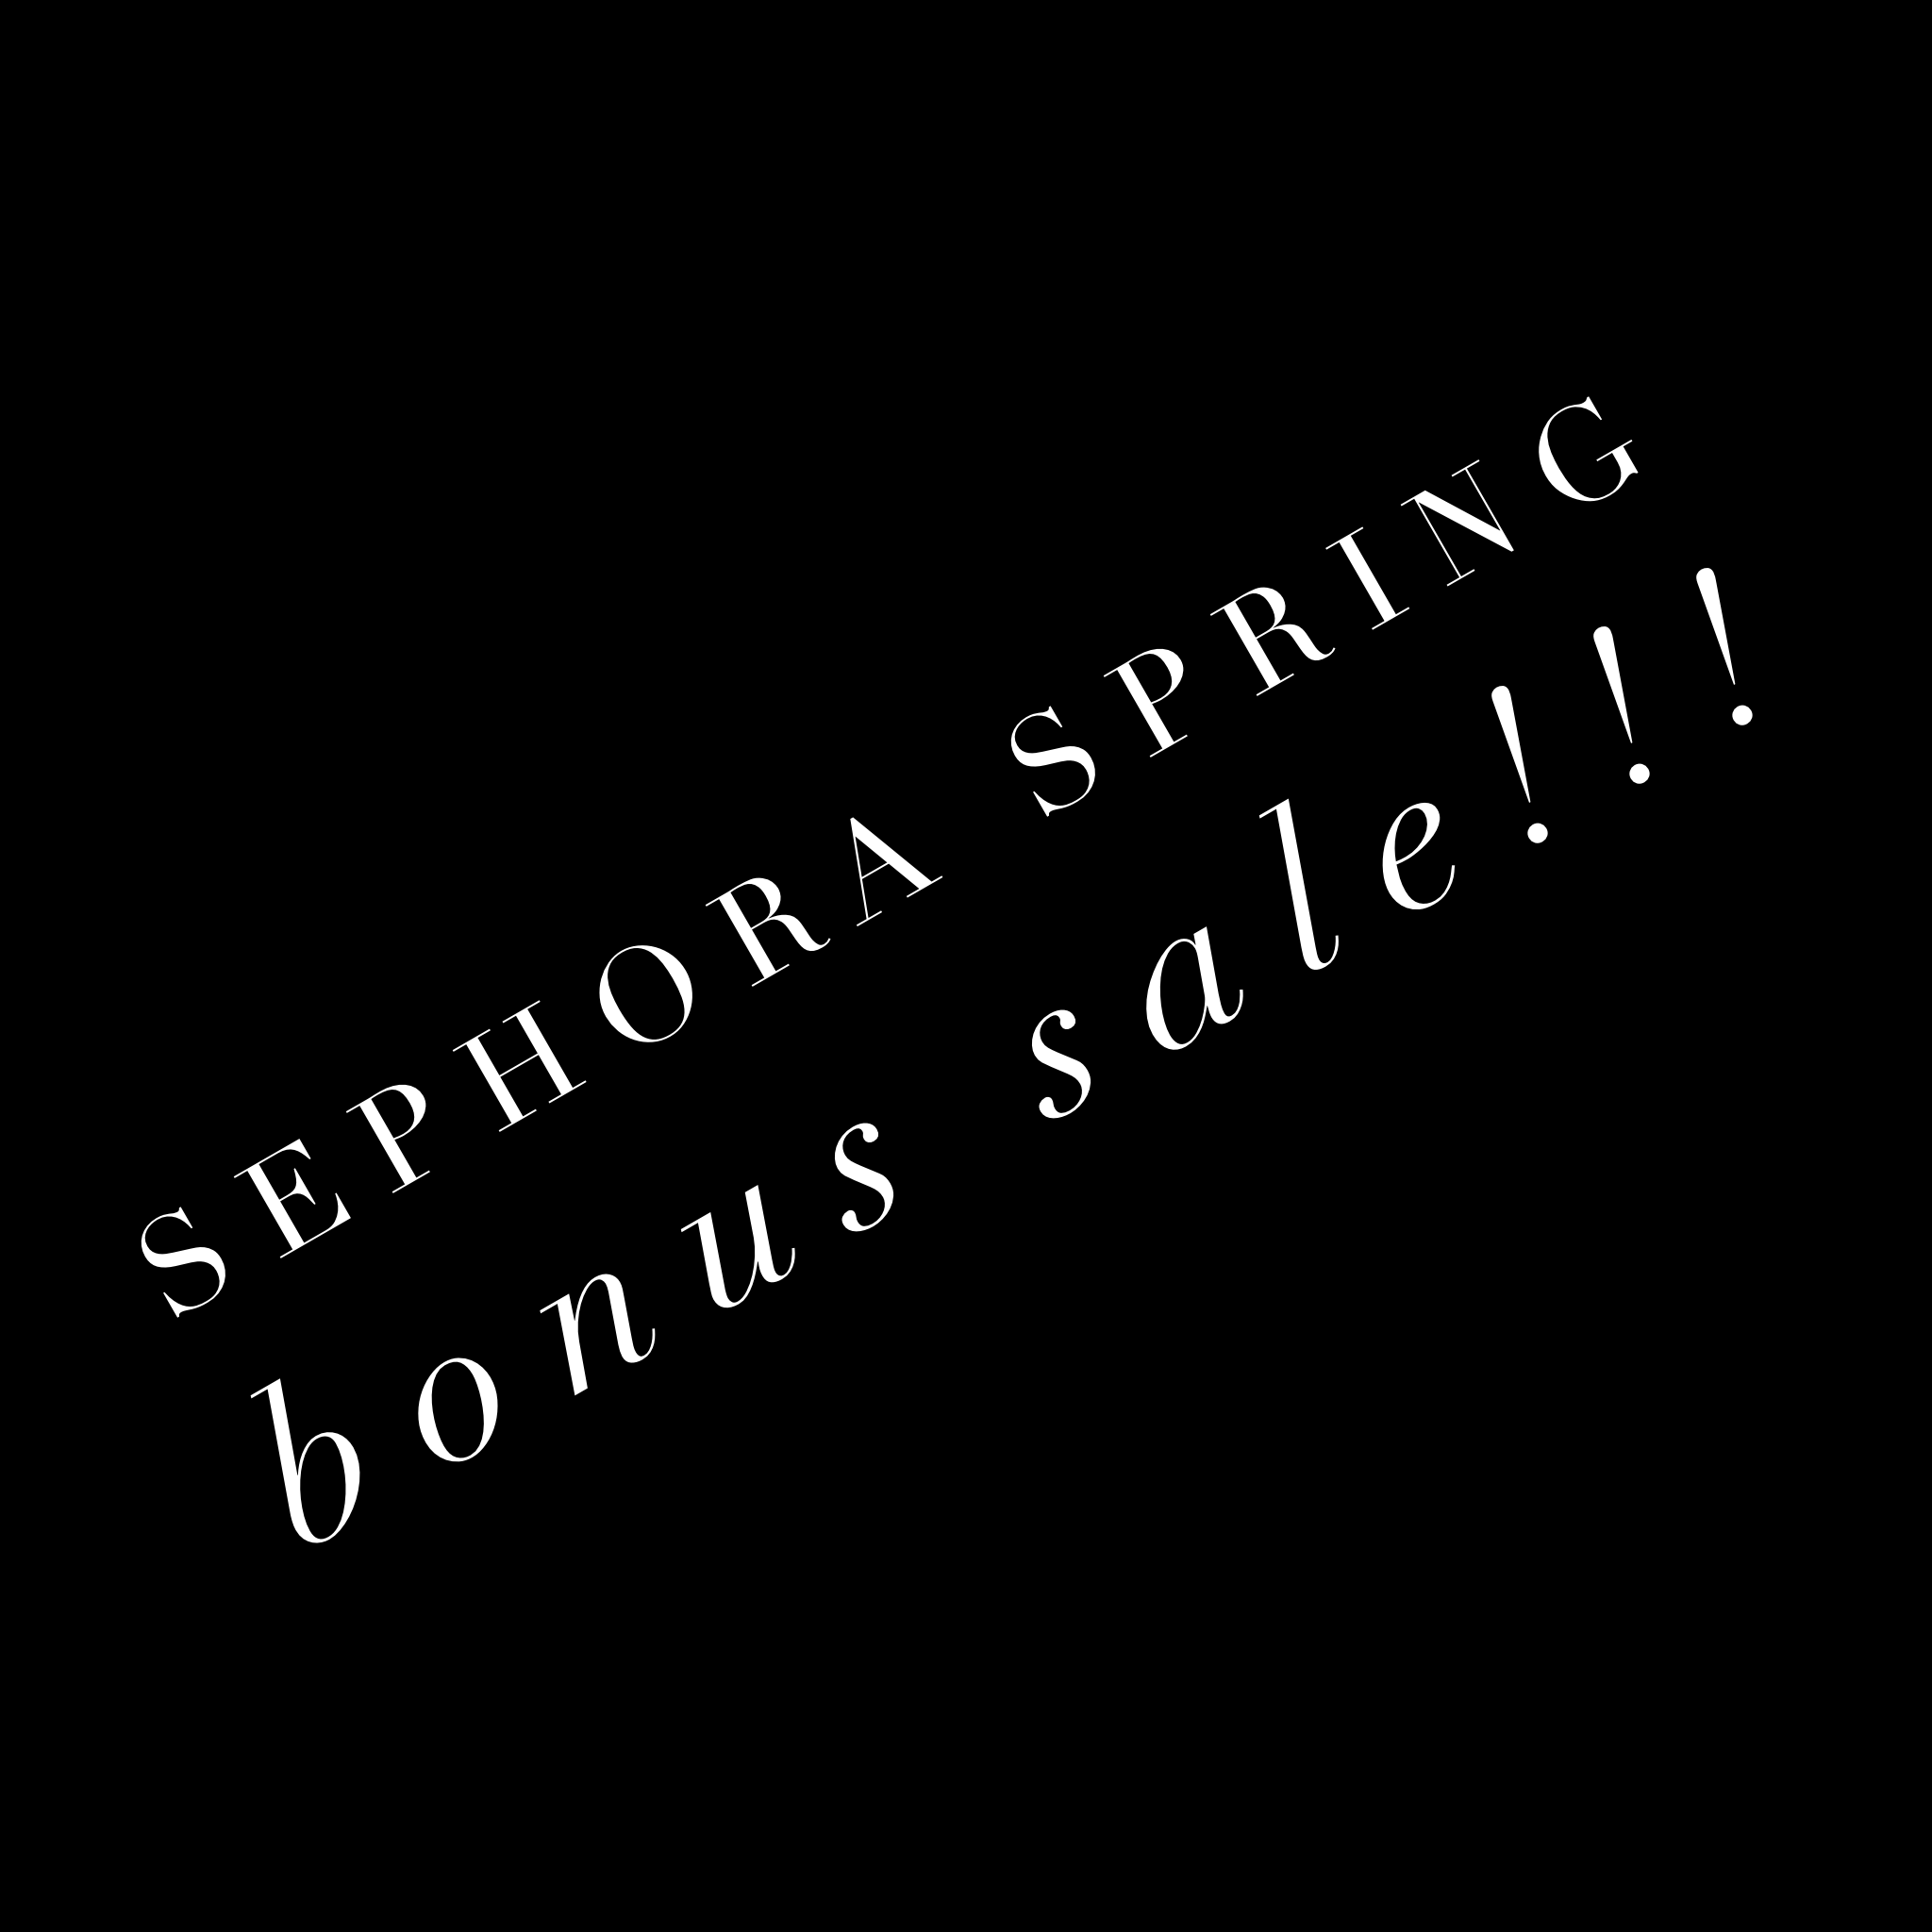 Sephora Sale - All in with Angie